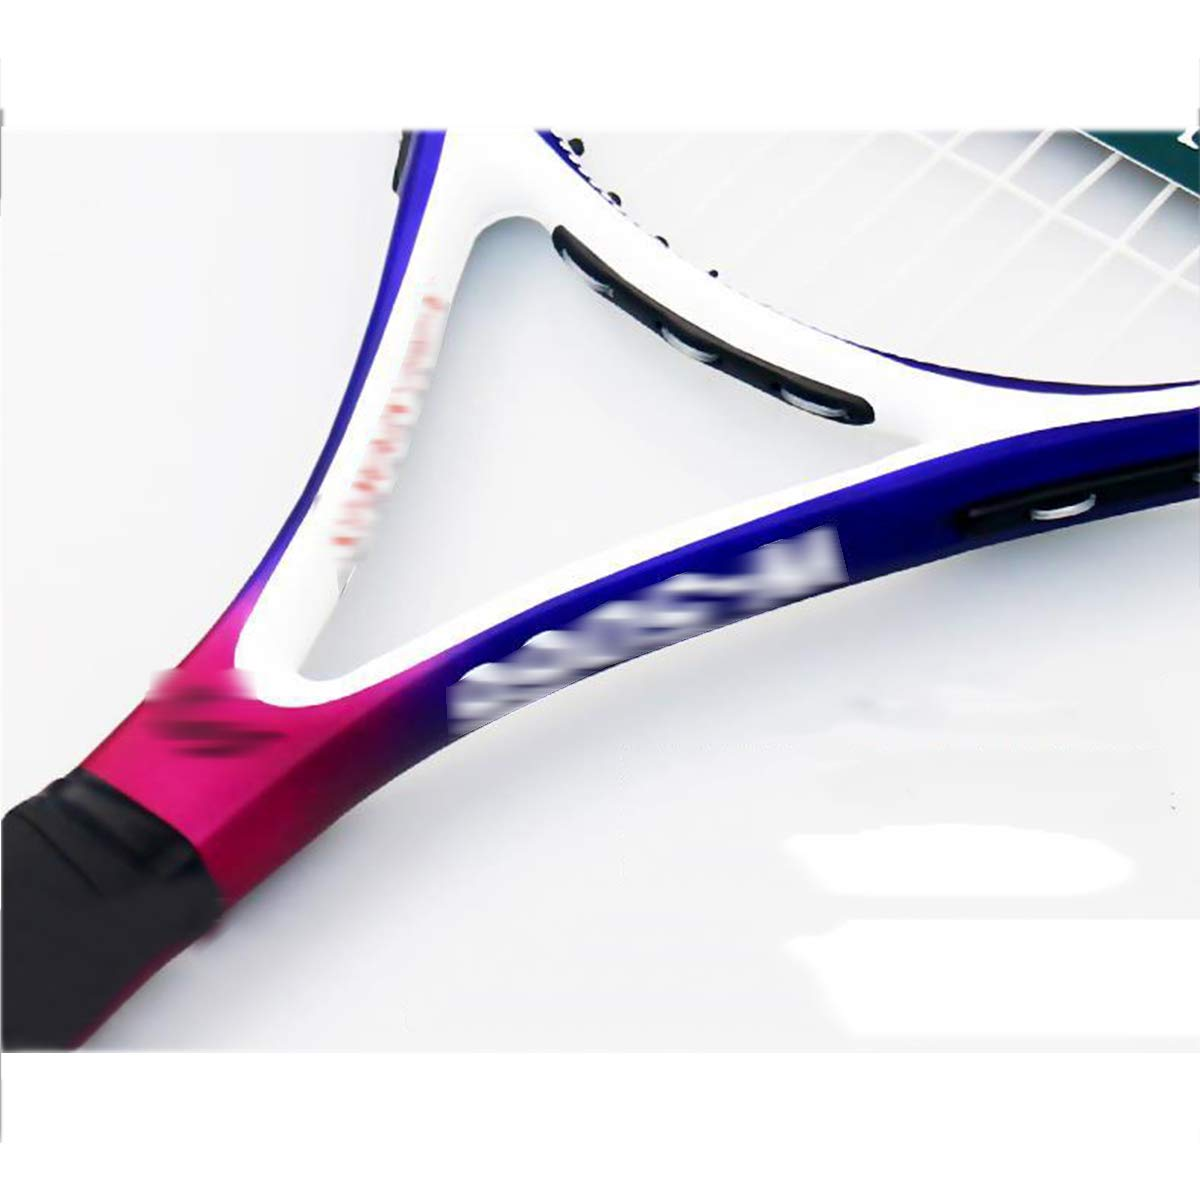 Amazon.com: Tennis Racket Professional Ultra Light Unisex Single Shot Carbon Composite Single Training Game Tennis Racket: Home Improvement